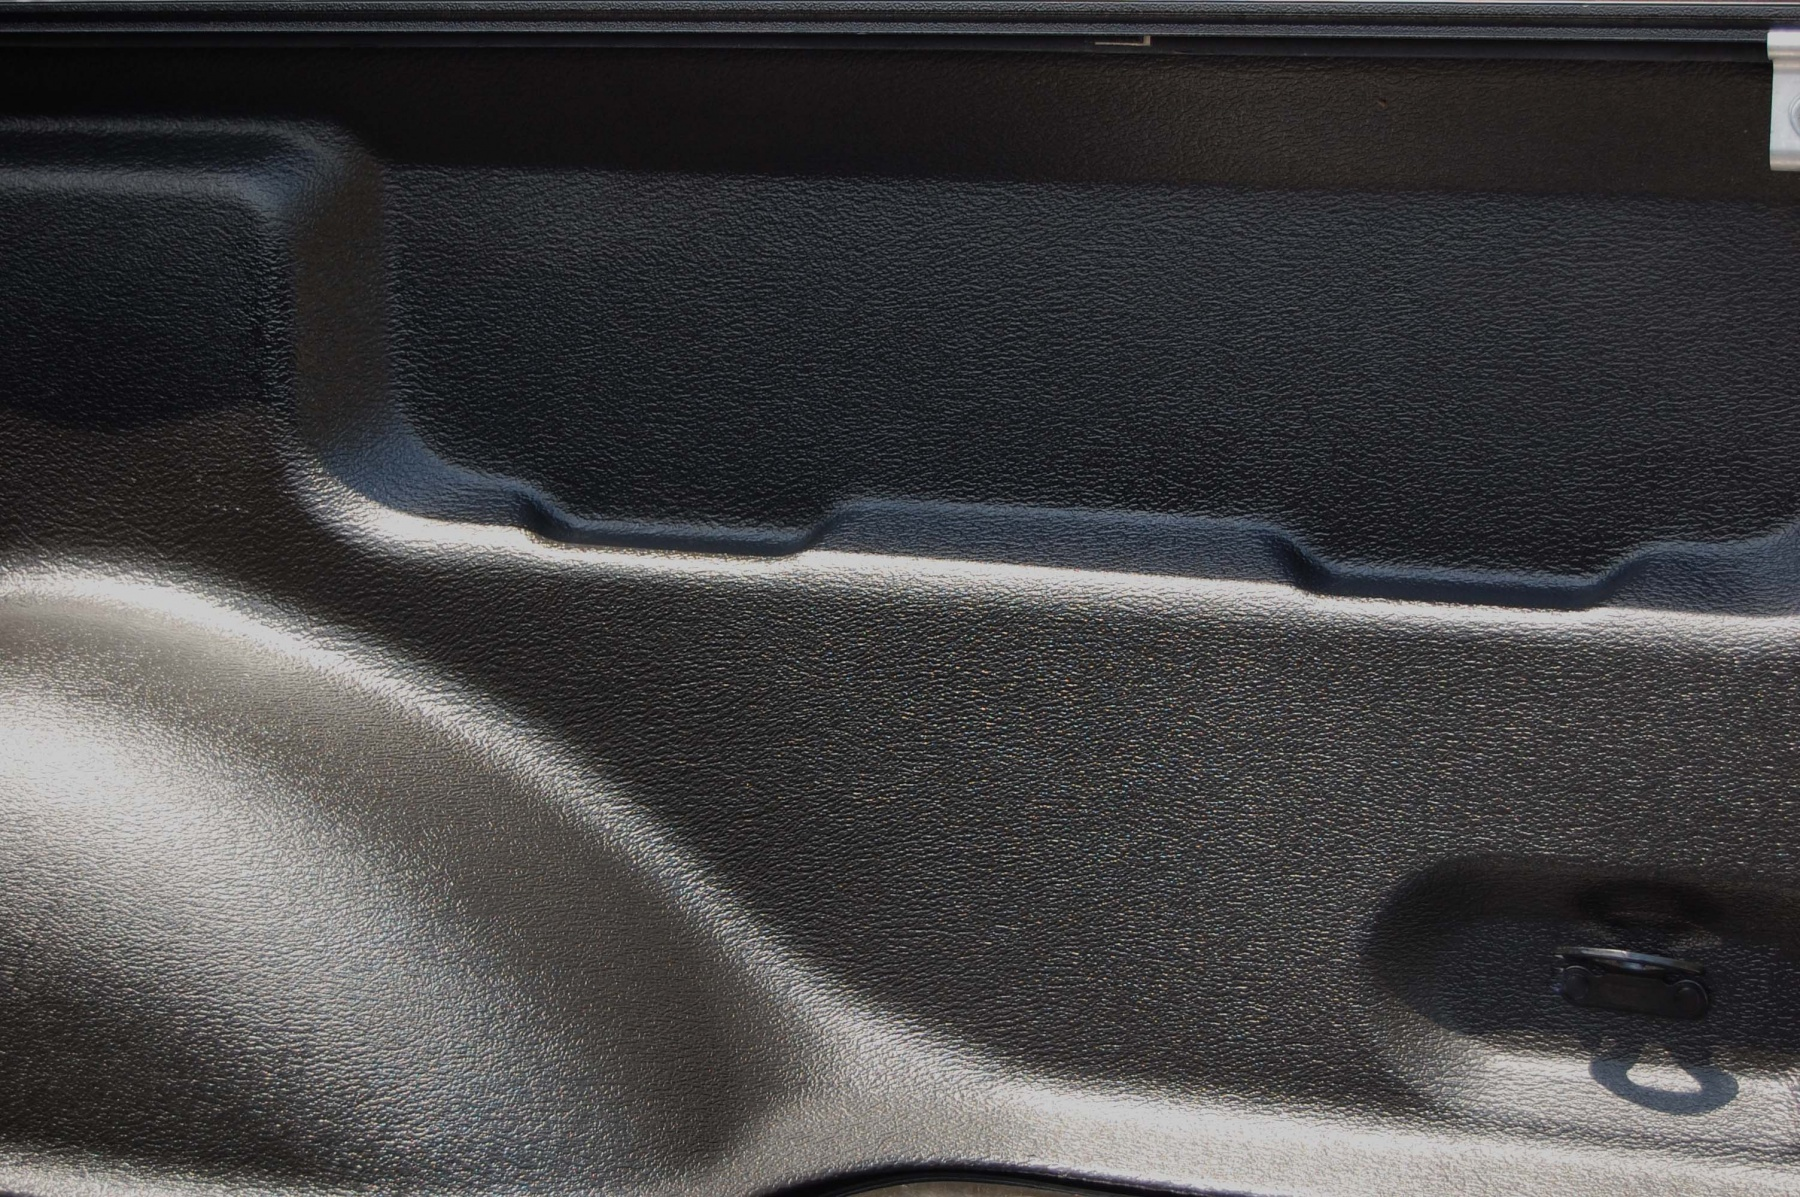 DualLiner Truck Bed Liner Fits 2008-2010 Ford F-250//F-350 with 6 foot 9 inch bed Model FOS0865